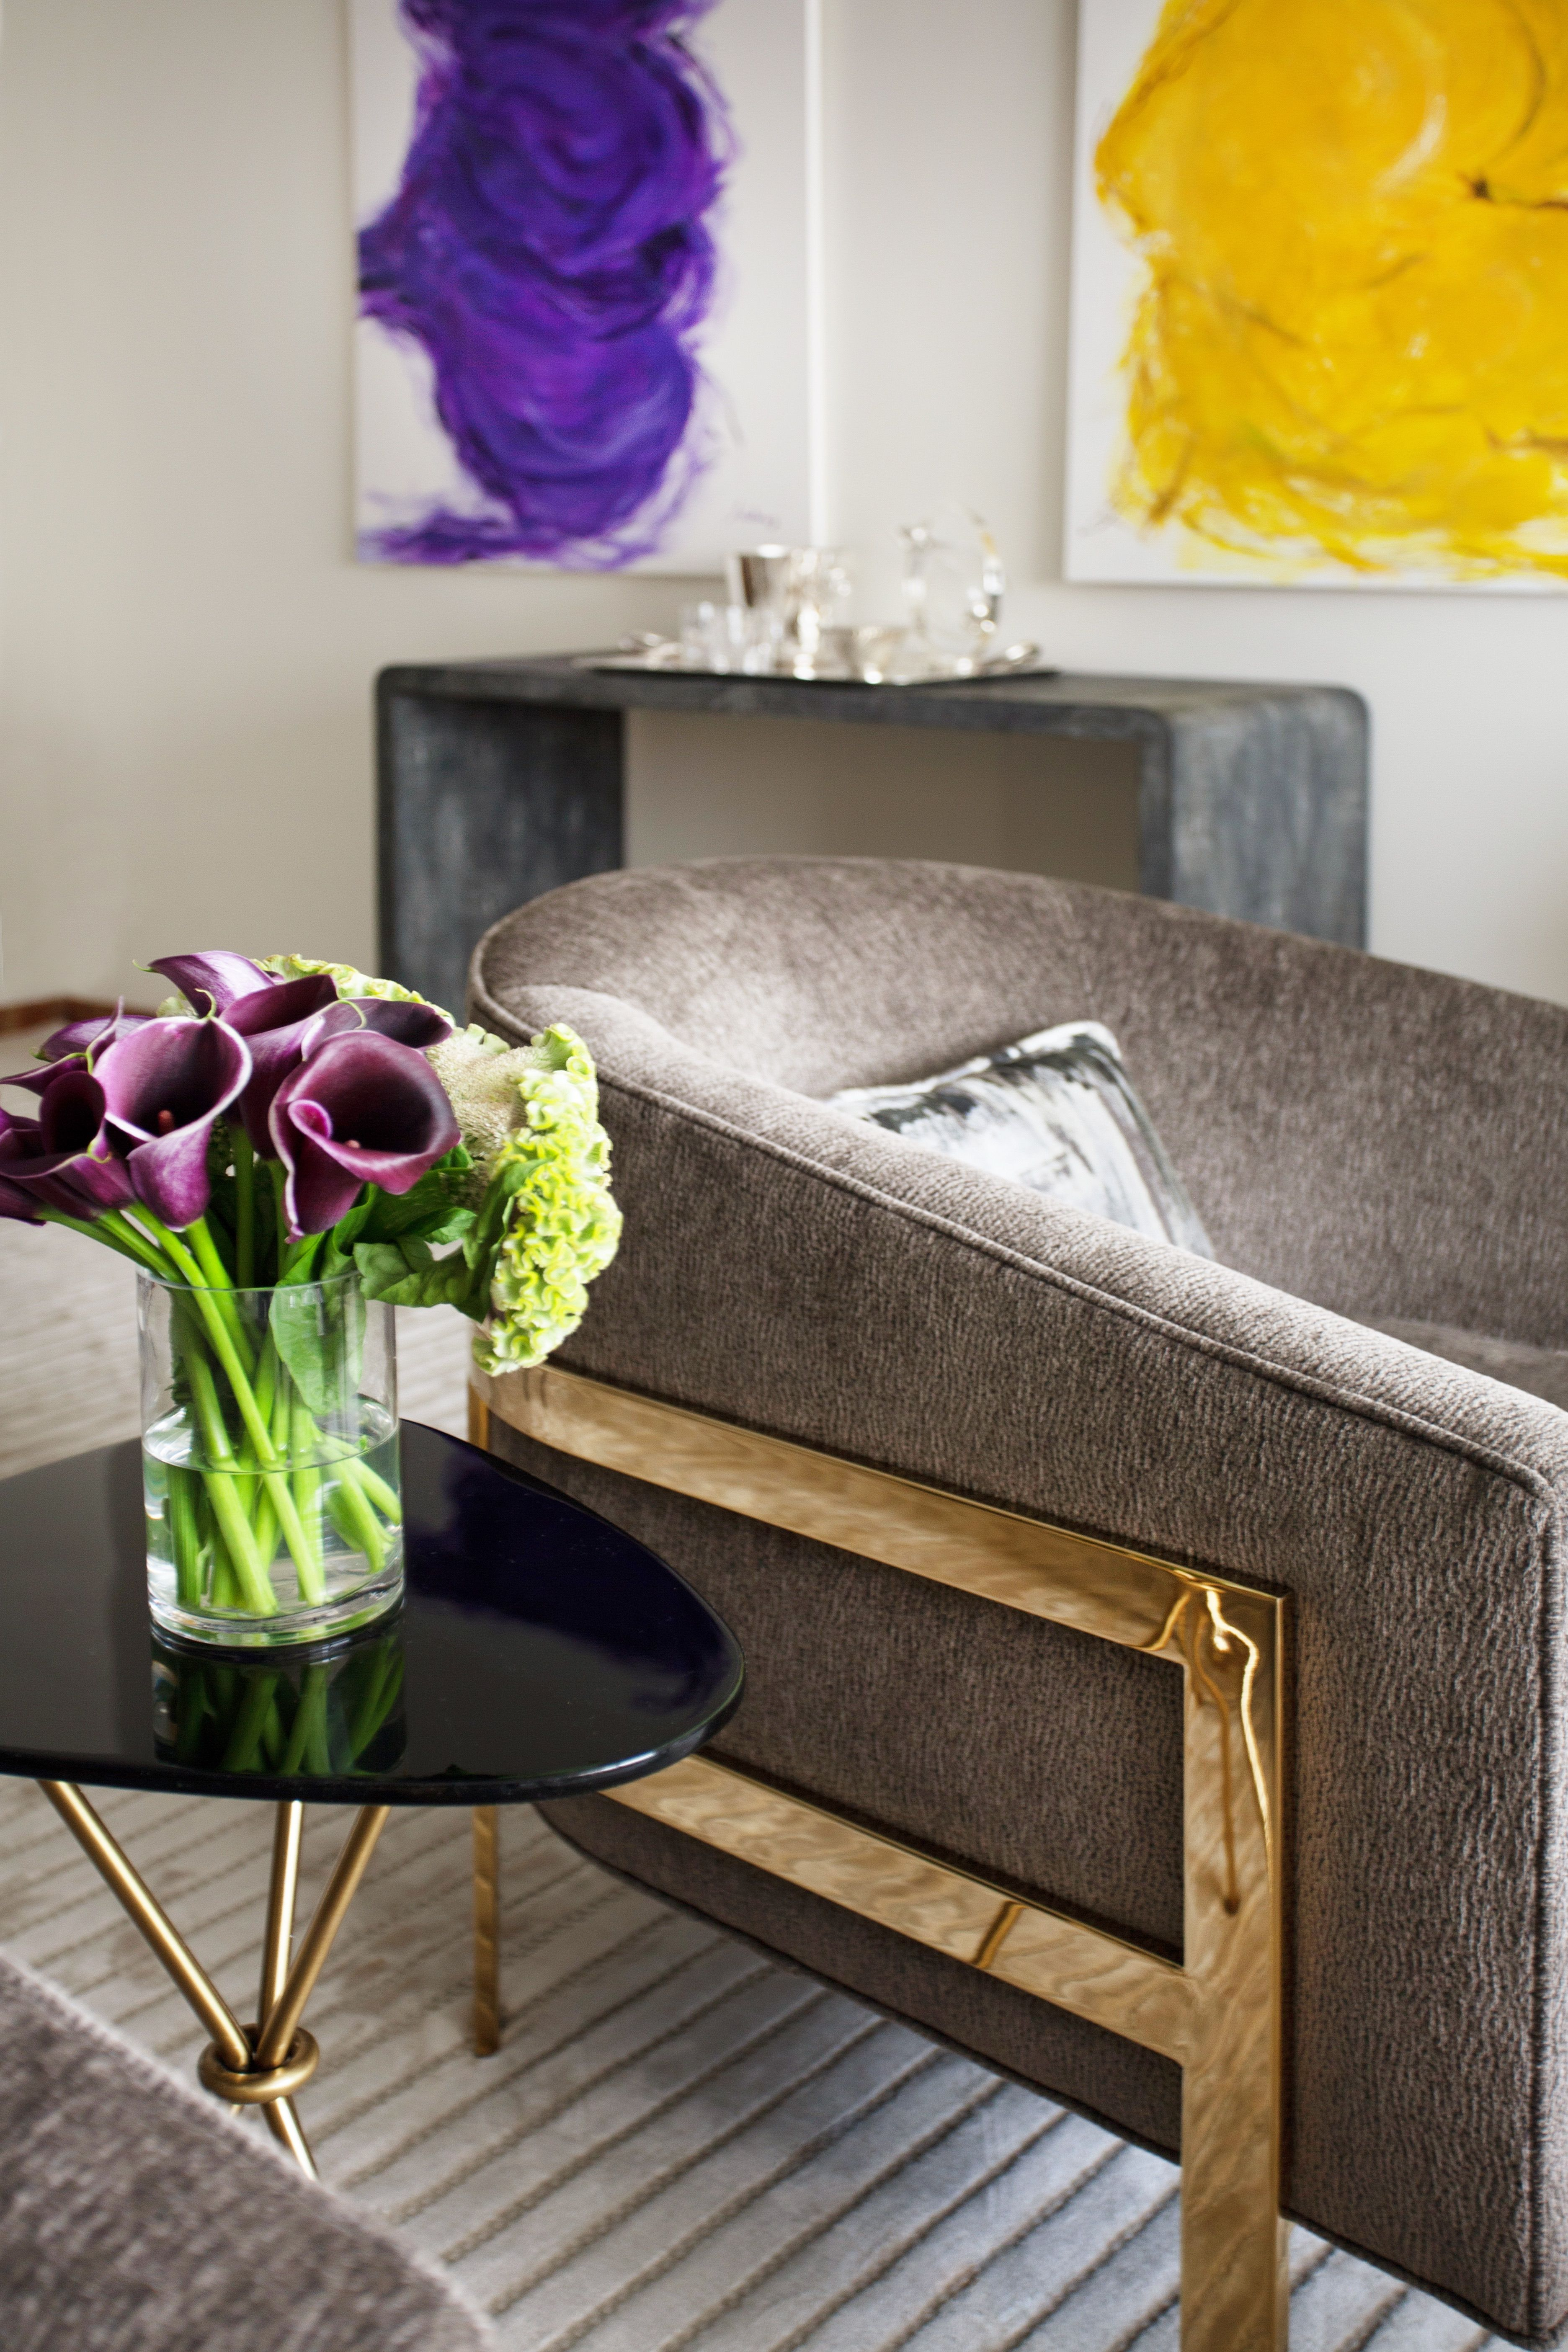 How To Decorate With Metallics – Without Going Over The Top